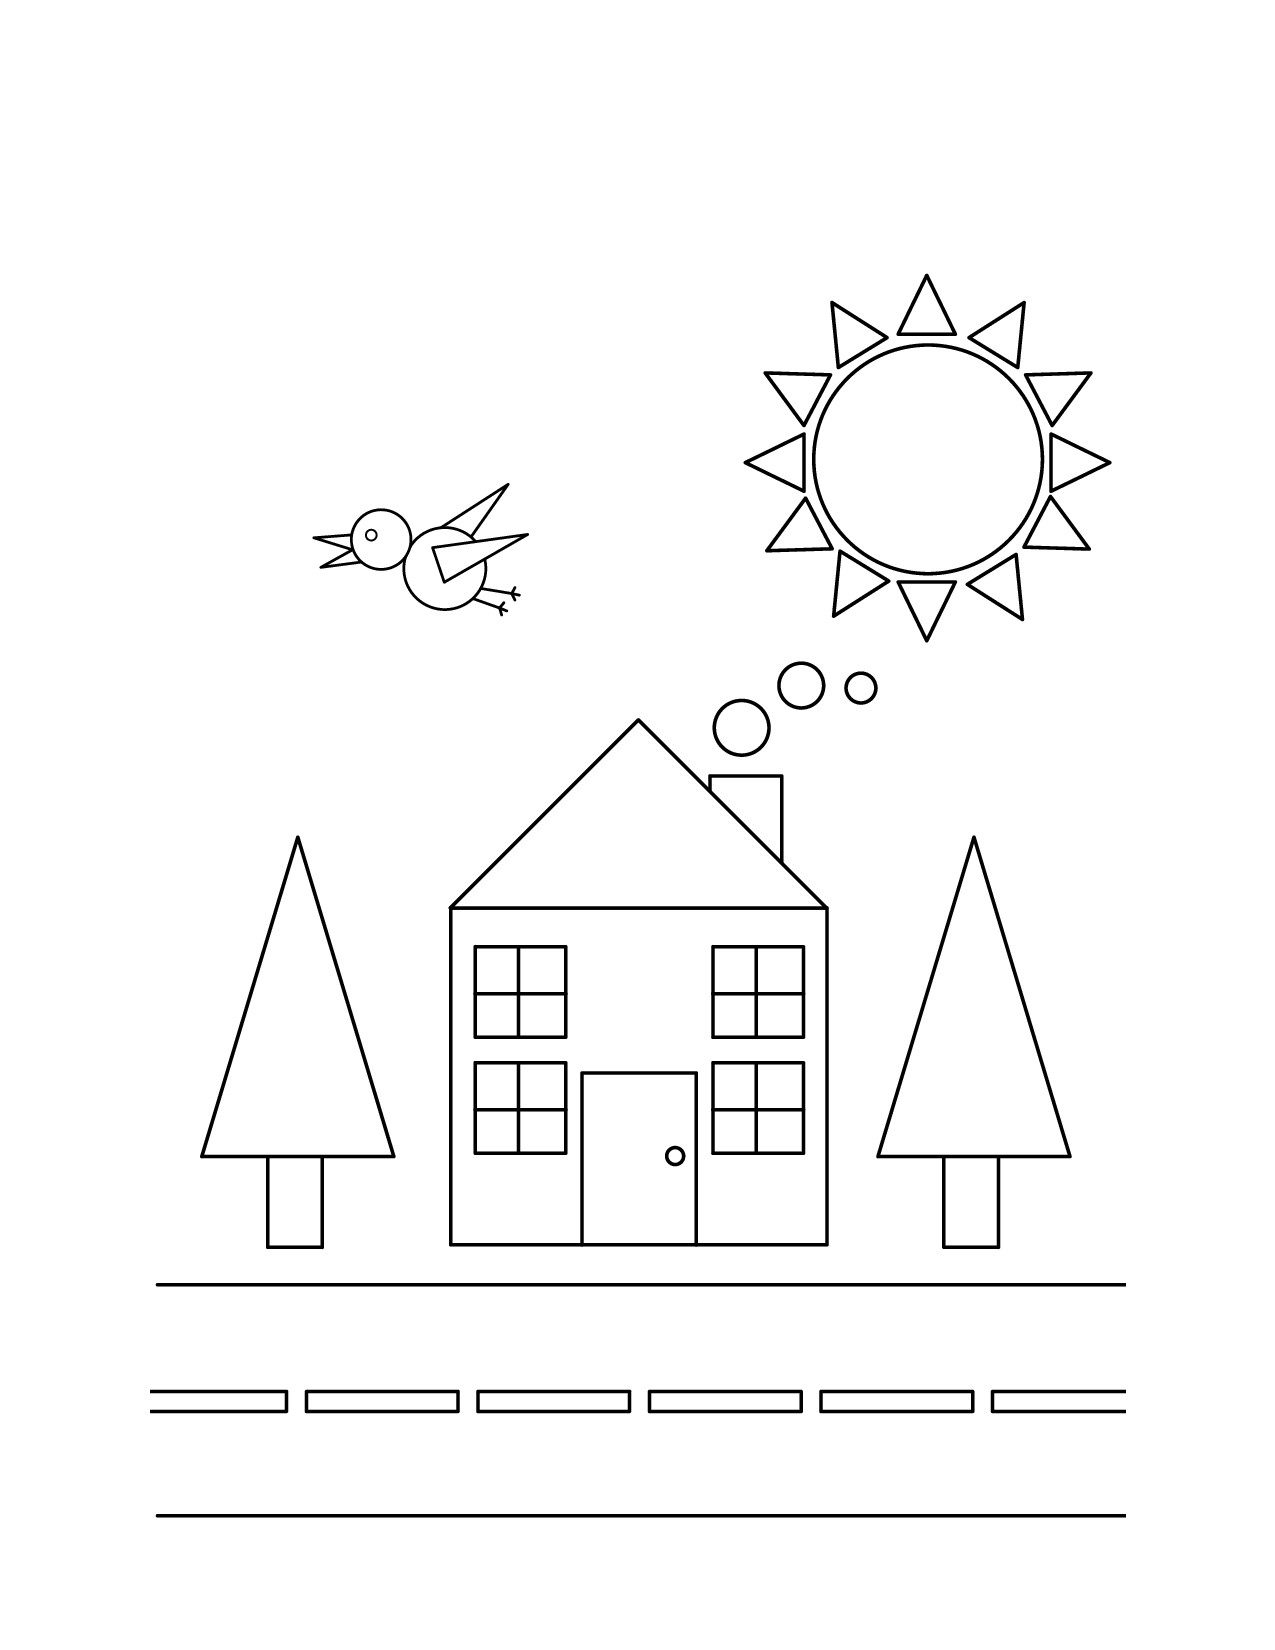 three dimensional shapes coloring pages - photo#2